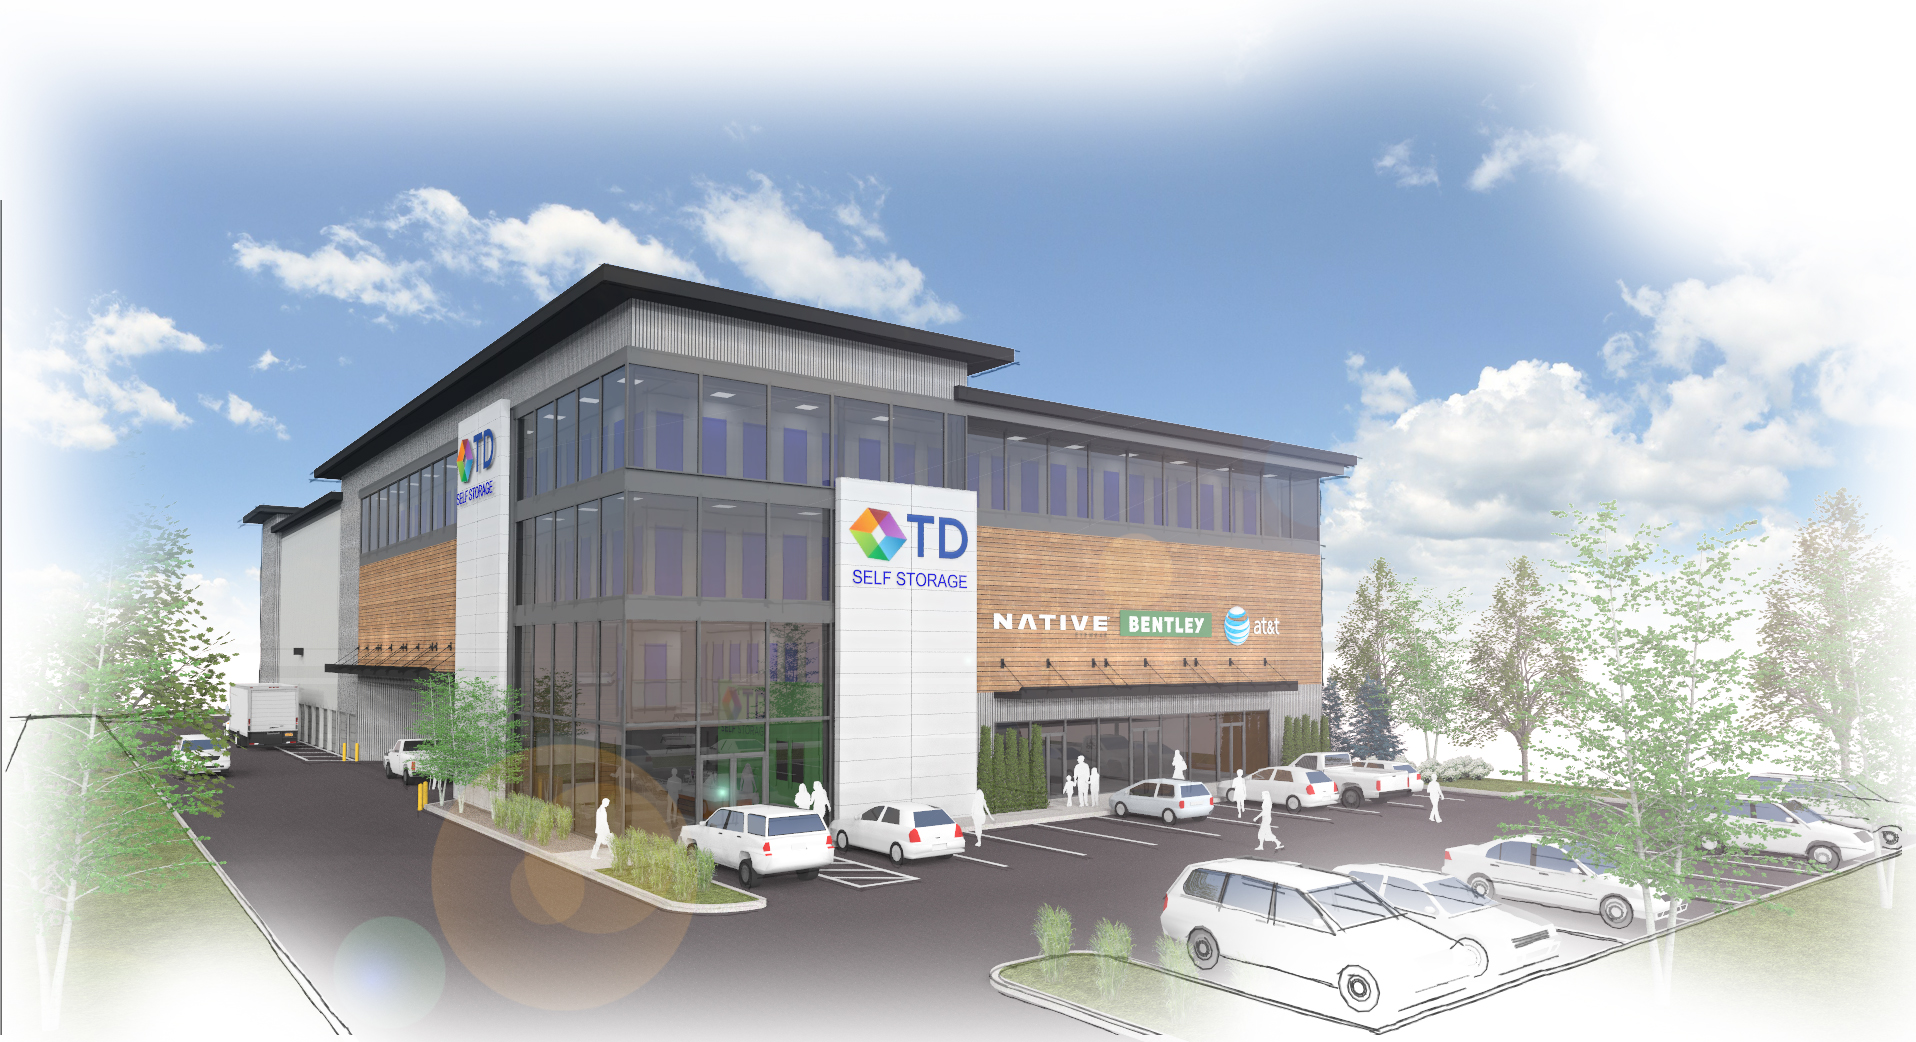 Greenville #2 Property-TD Self Storage